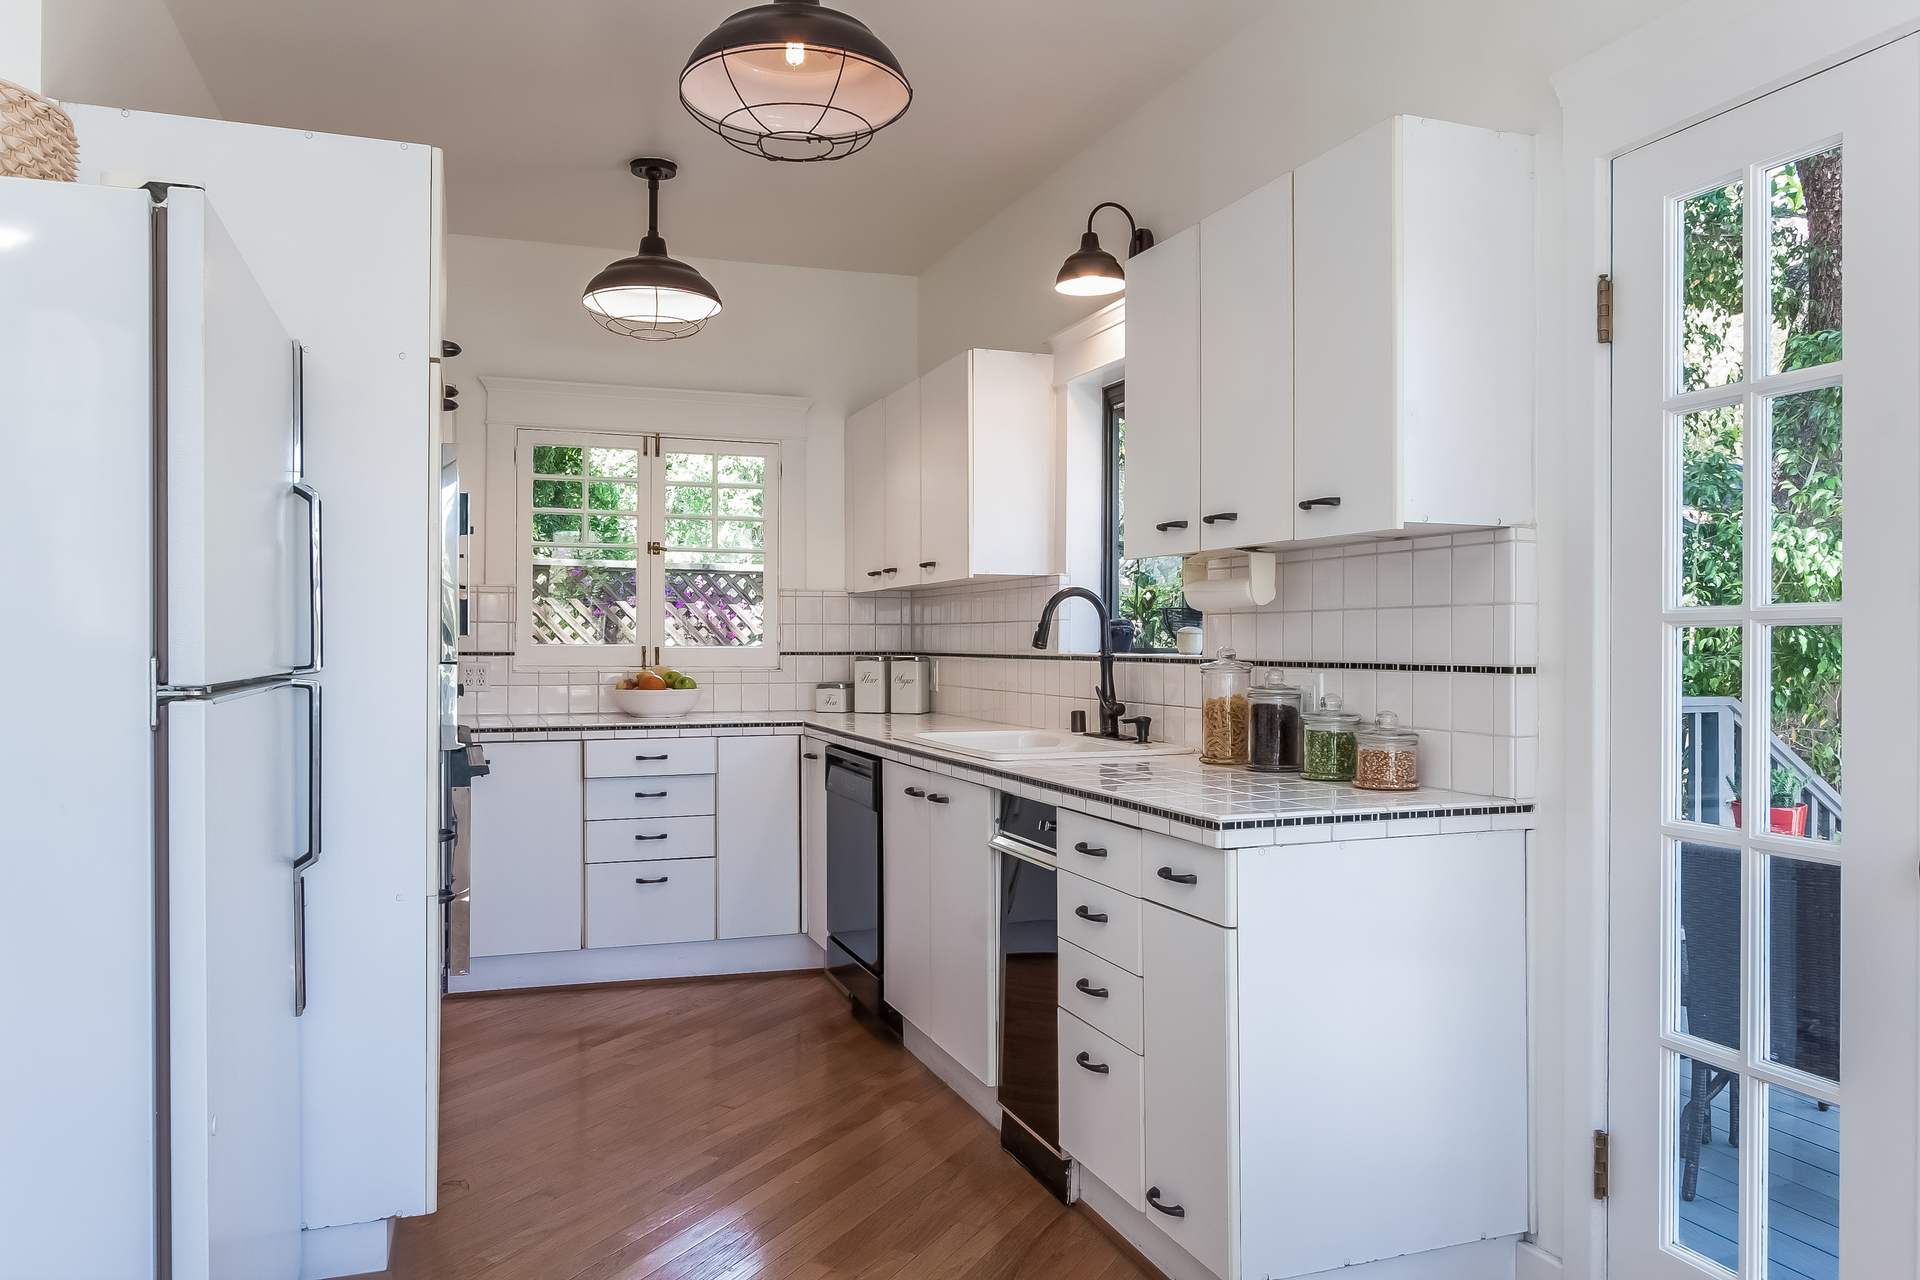 011-Kitchen-1926865-medium.jpg